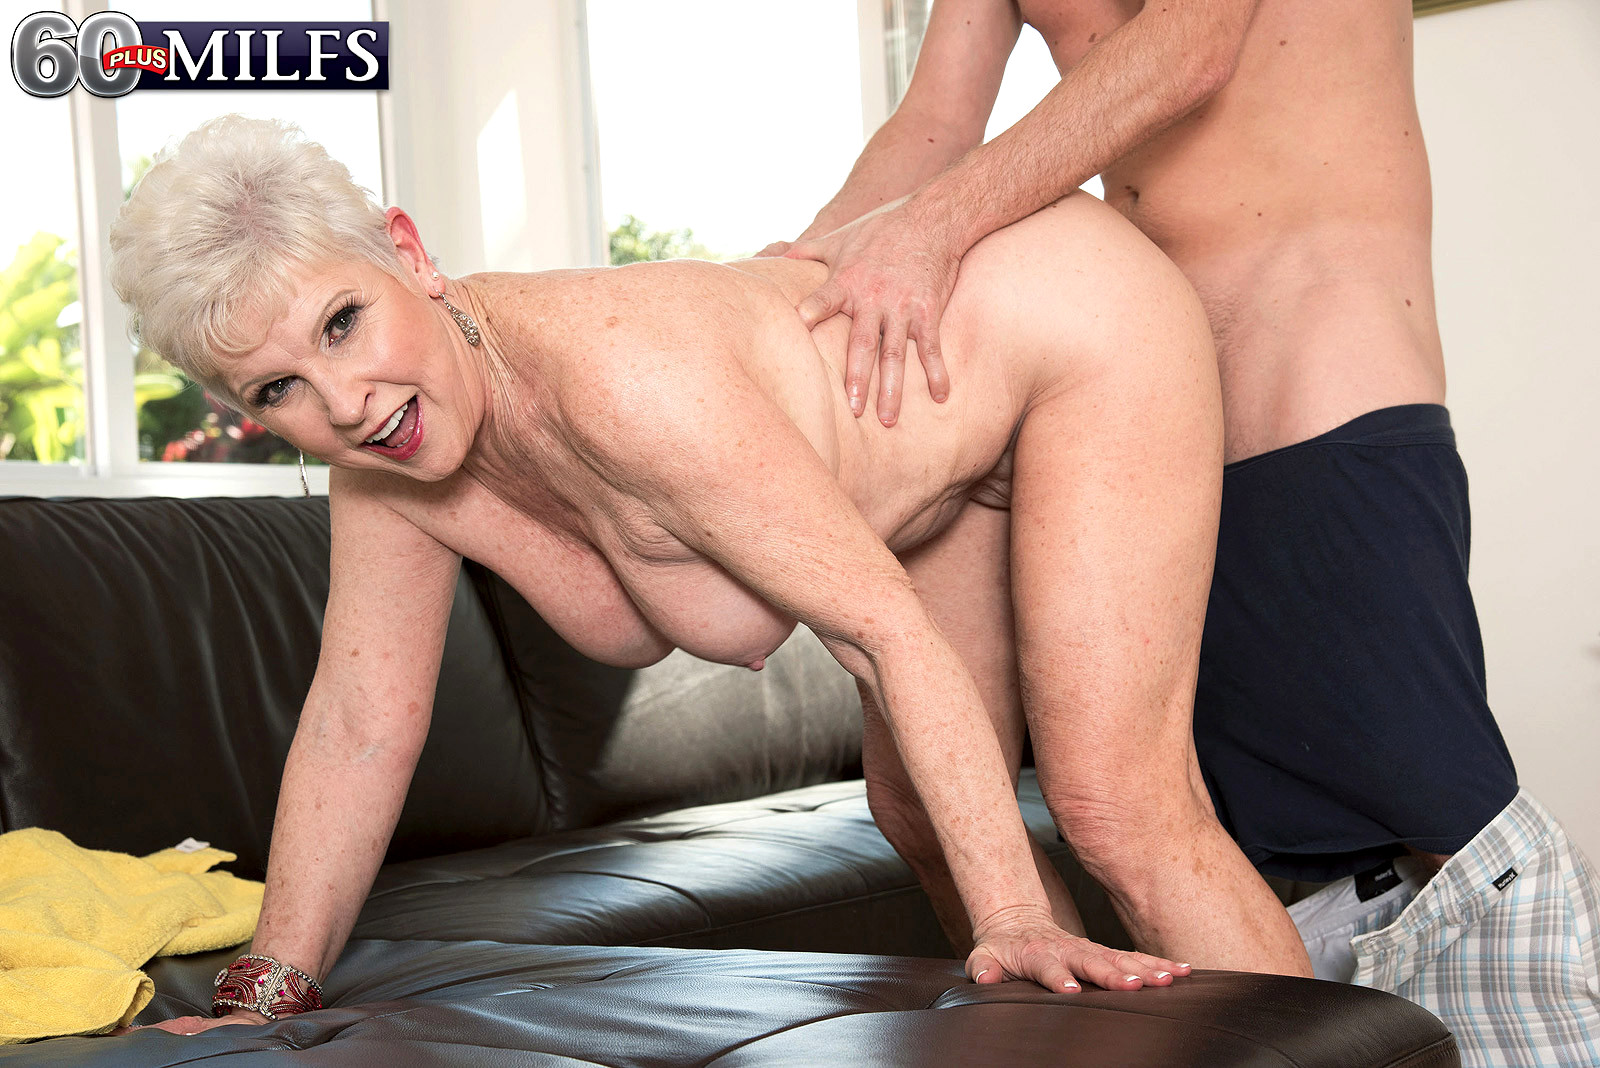 Hot grandma is fucking with a friend of her son